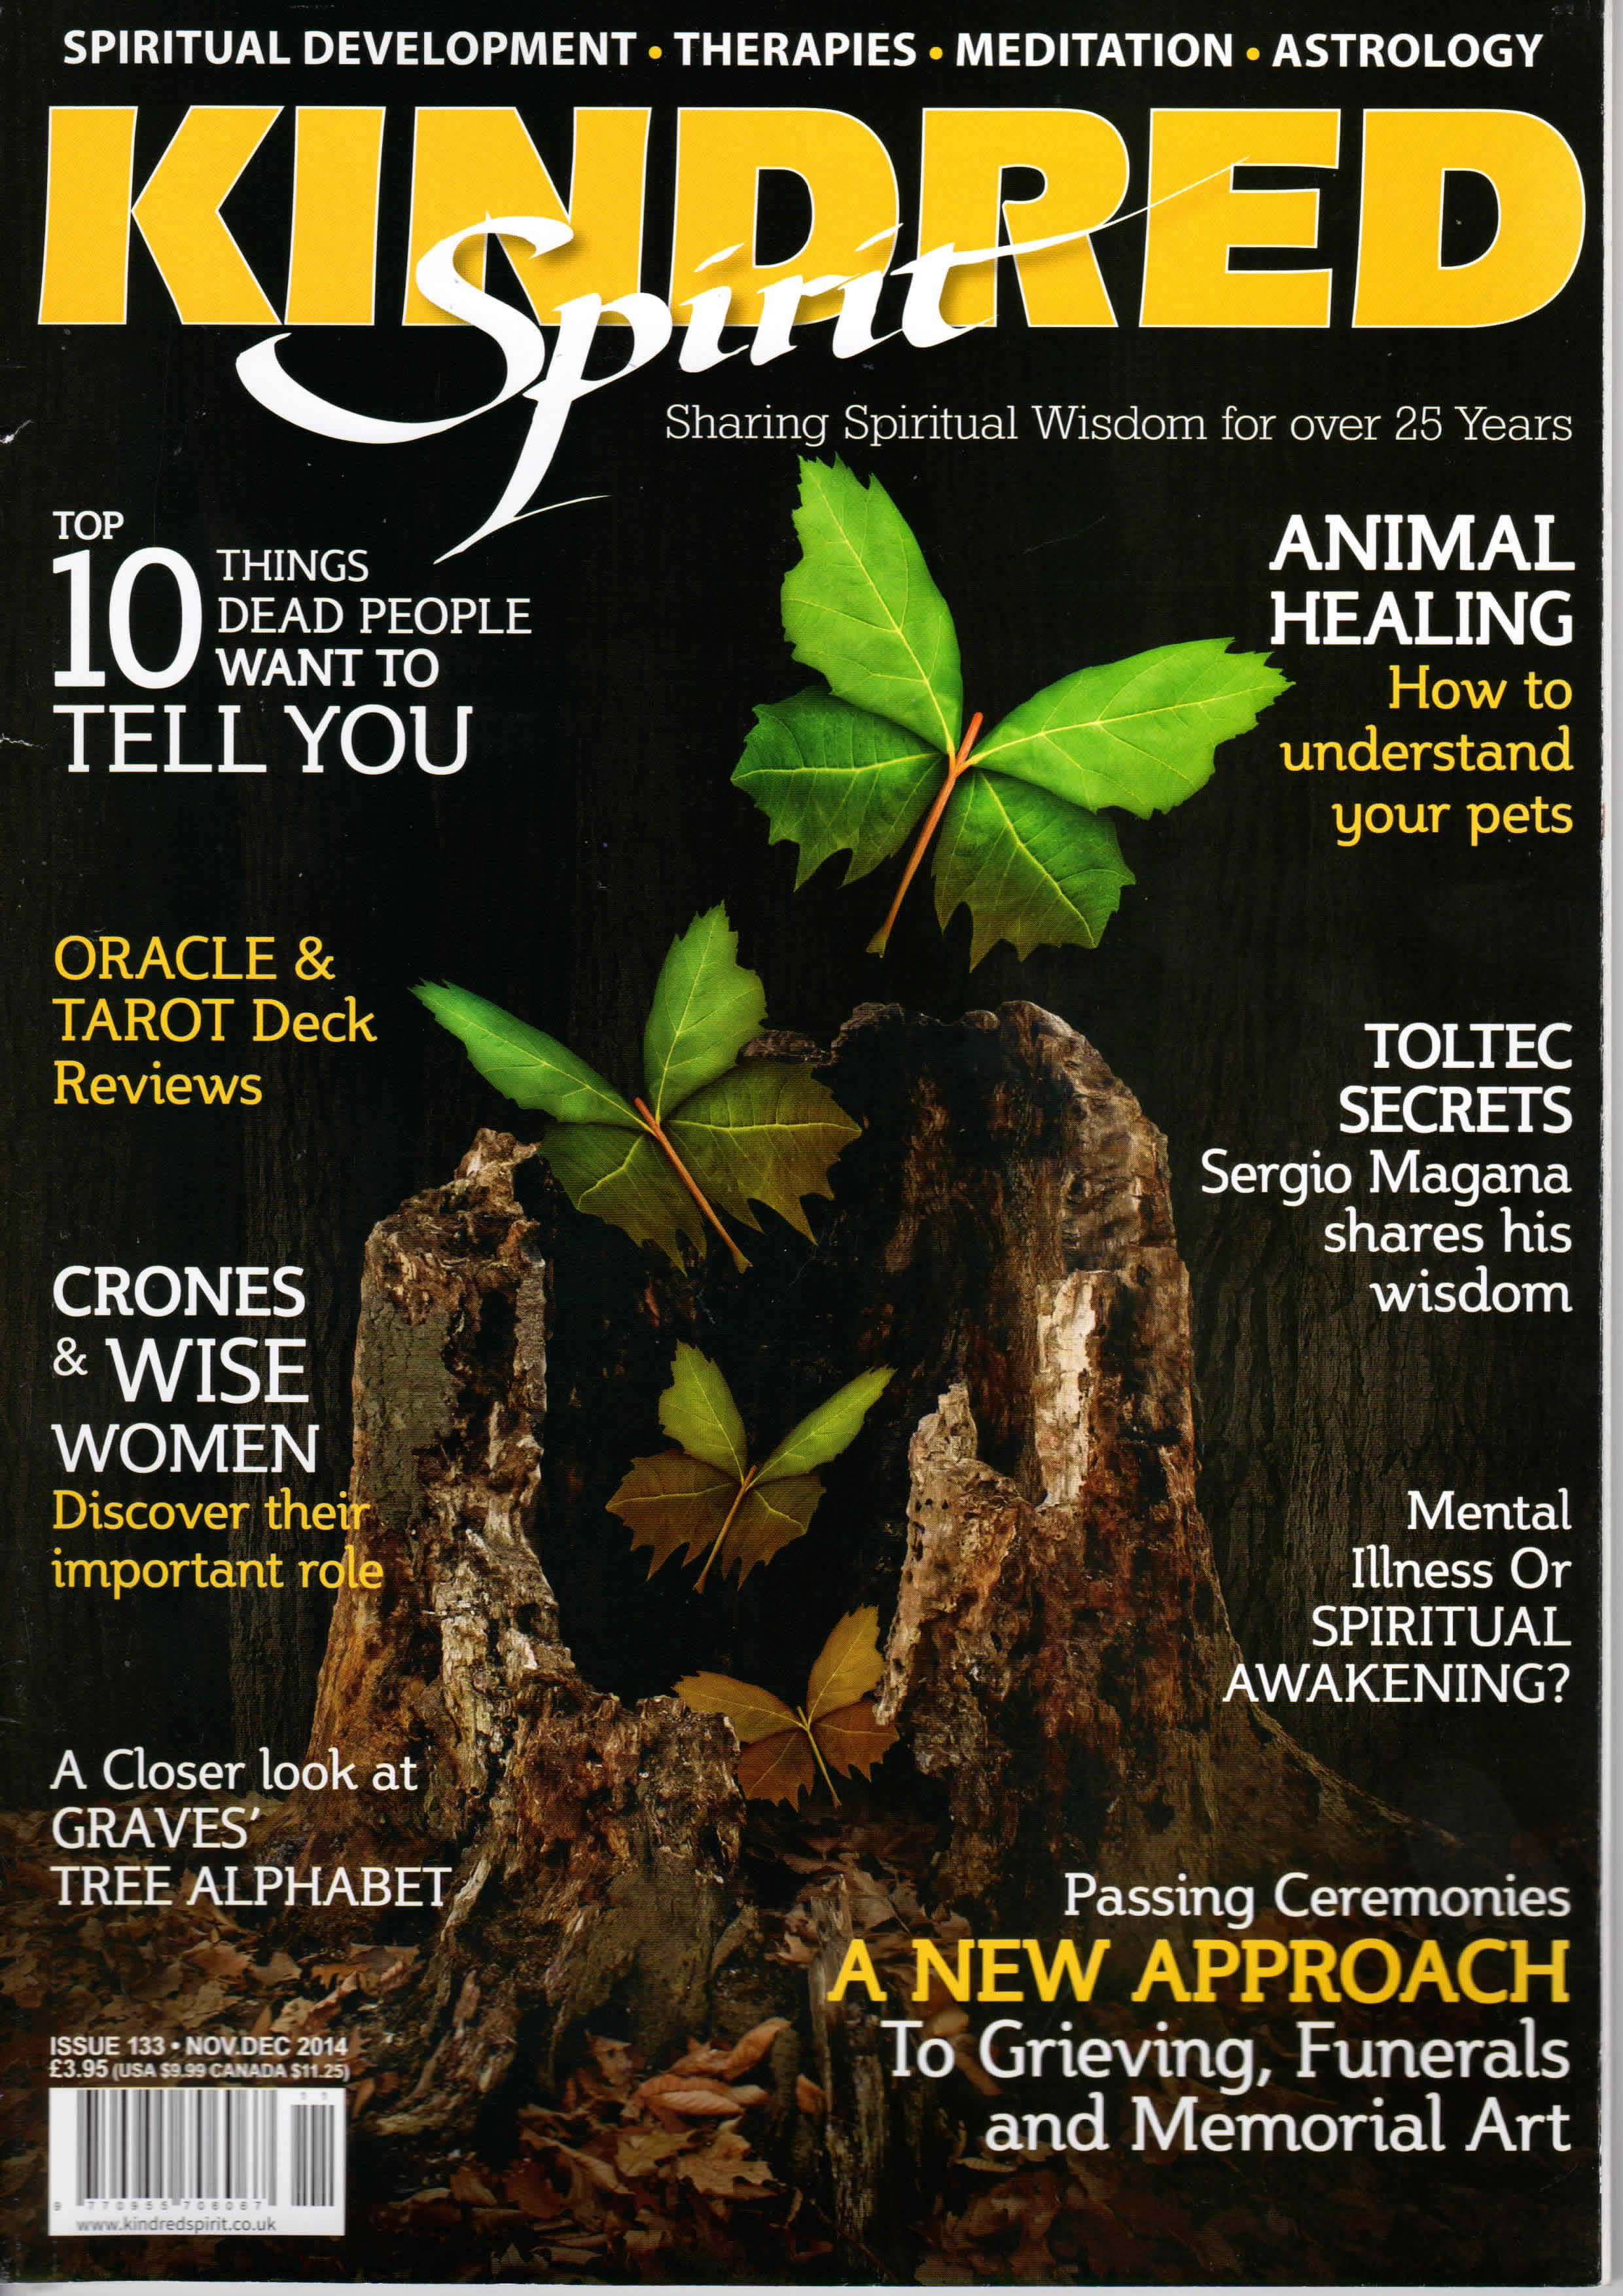 Article in Kindred Spirit magazine about working with Michal Levin